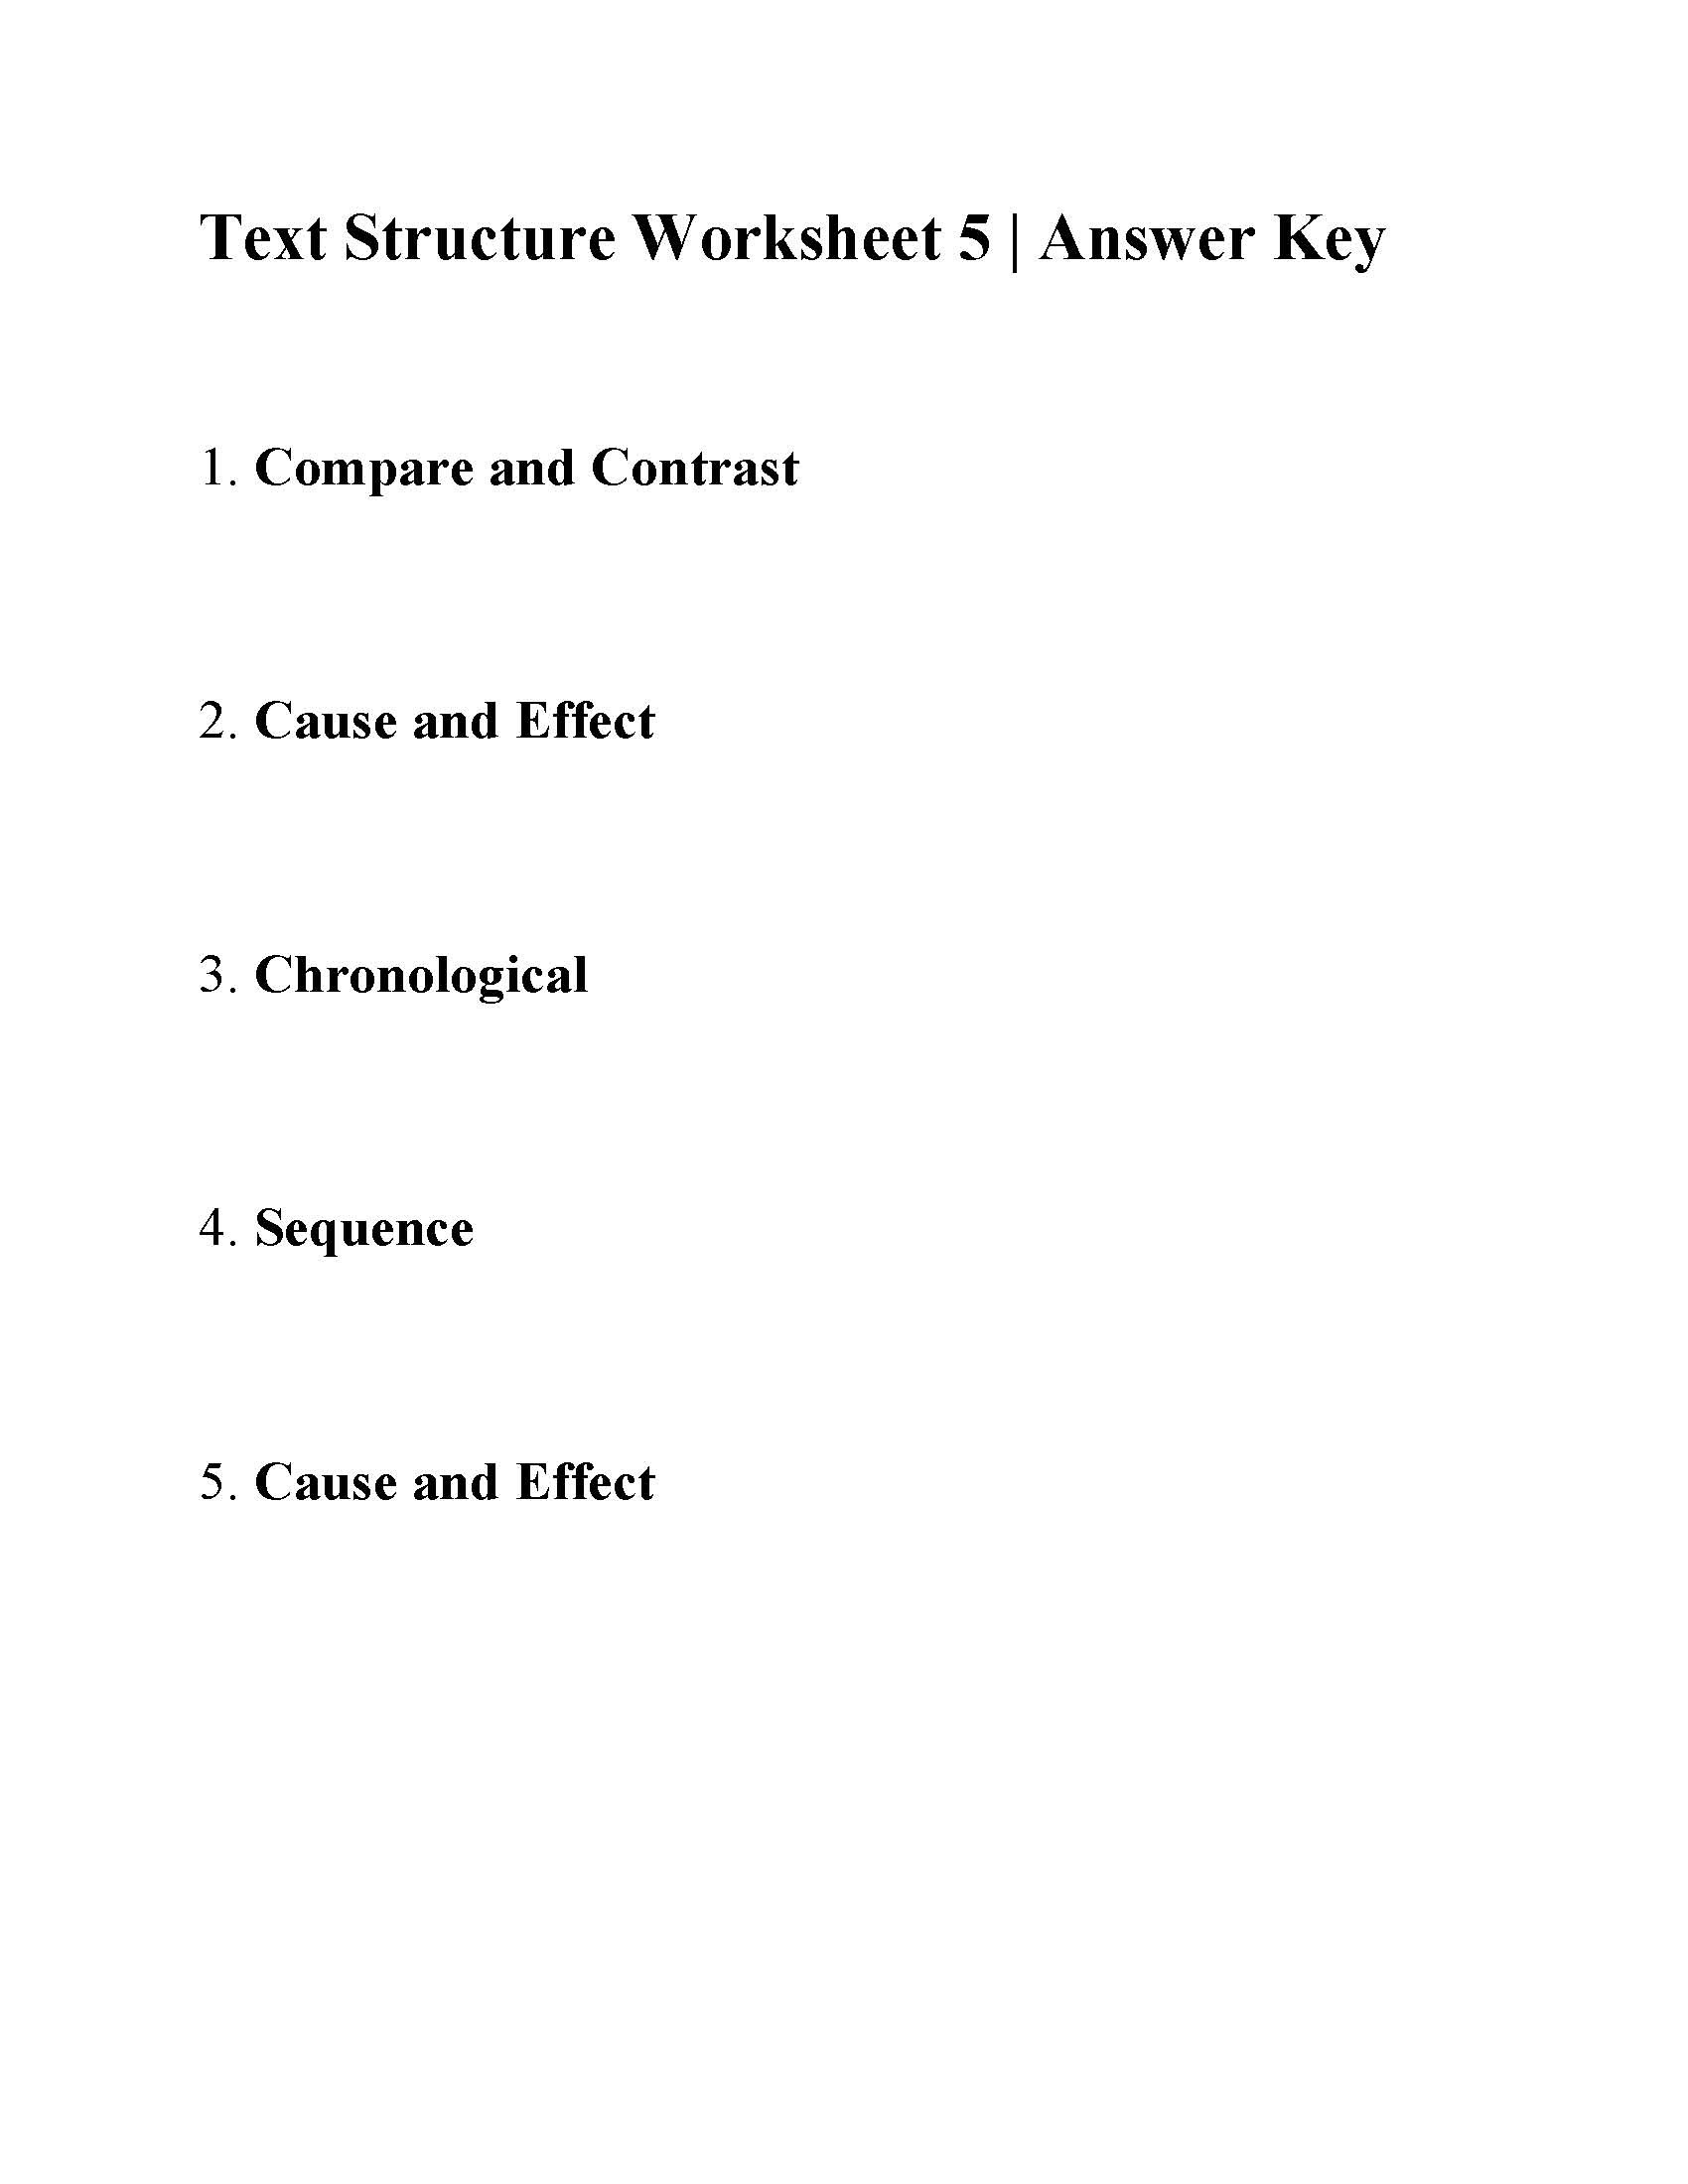 Text Structure Worksheets Grade 4 Text Structure Worksheet 5